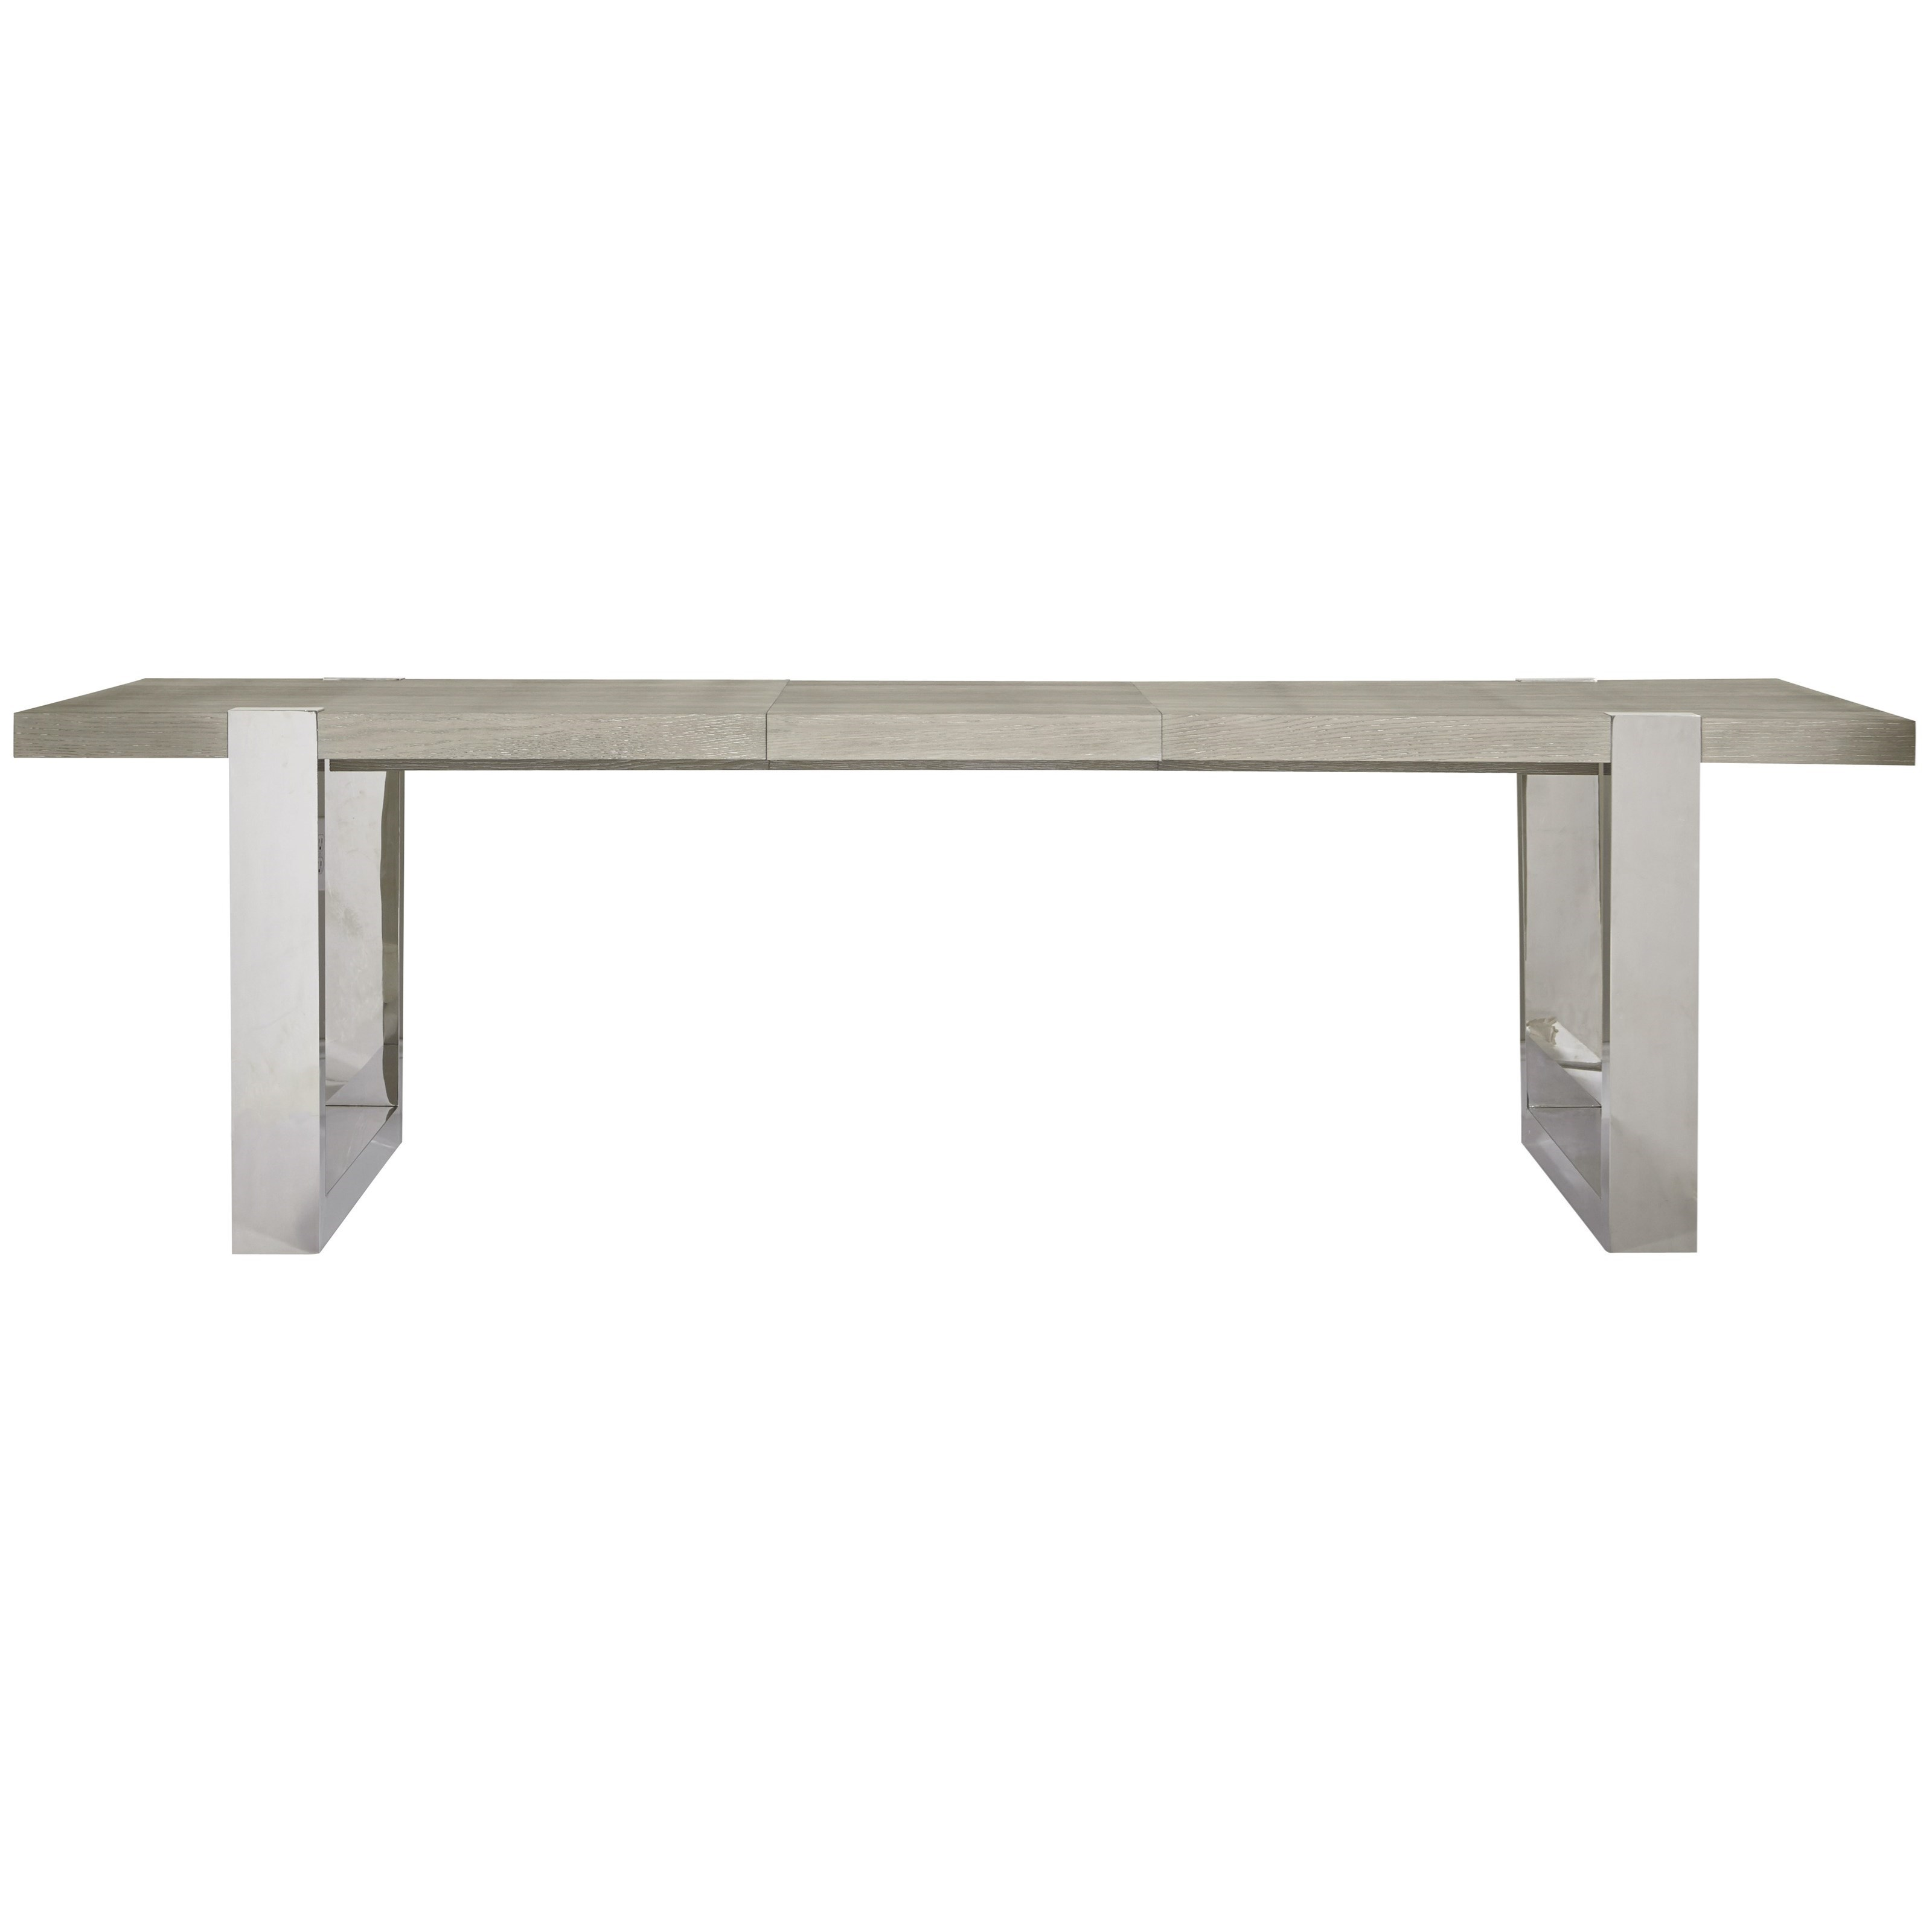 Modern Desmond Dining Table by Universal at Upper Room Home Furnishings